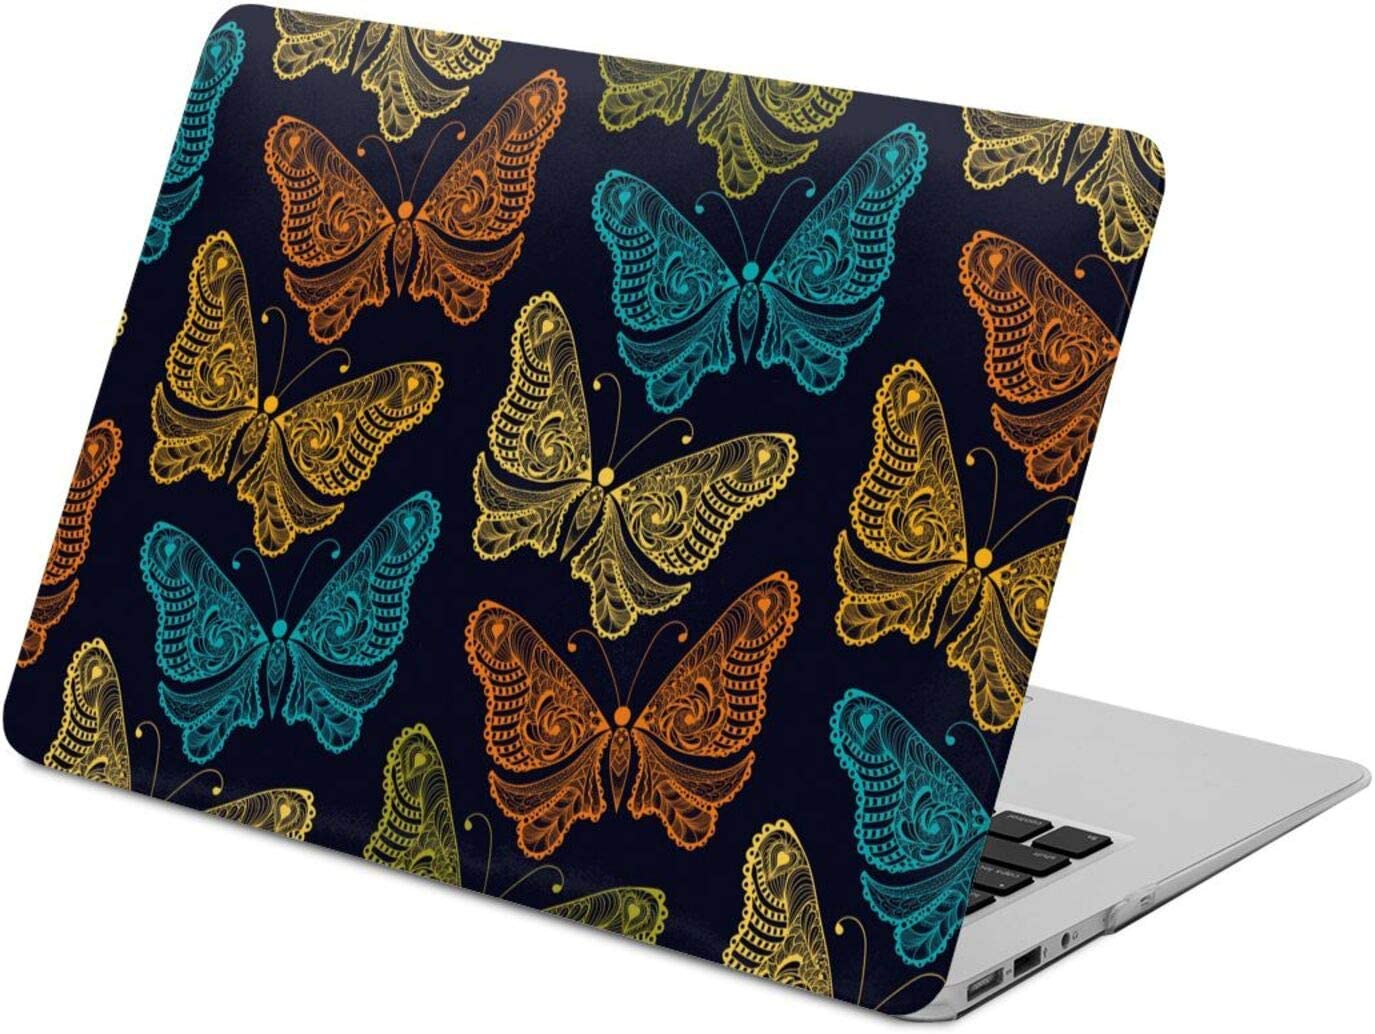 Stylized Butterfly Seamless Gorgeous Compatible with Inch Air 13 MacBook Max 66% OFF